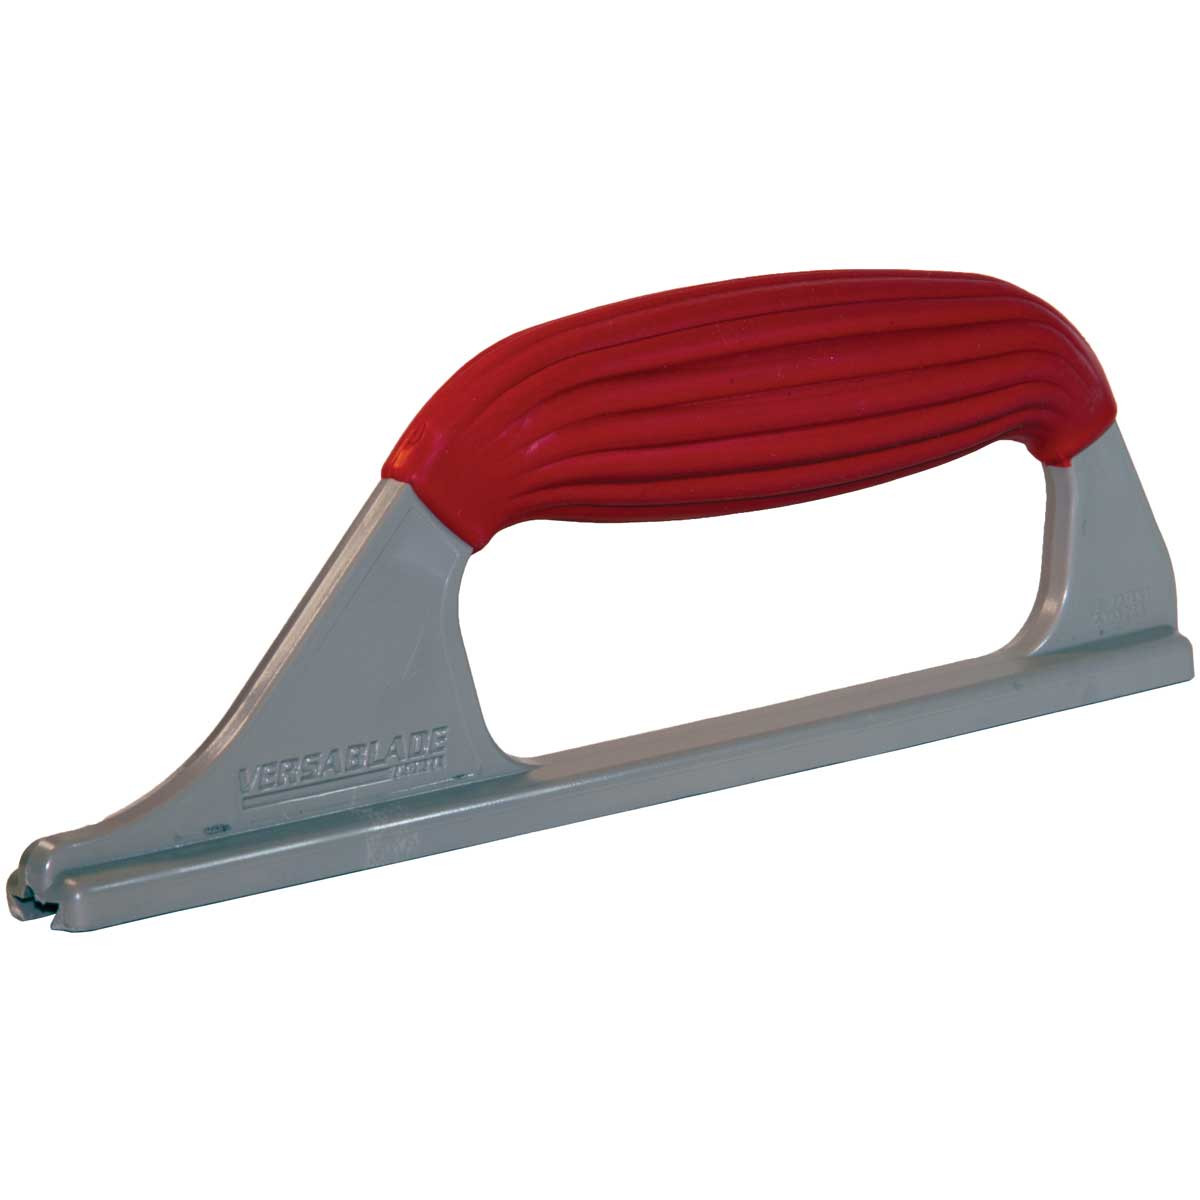 Versablade Trowel Red Handle instal